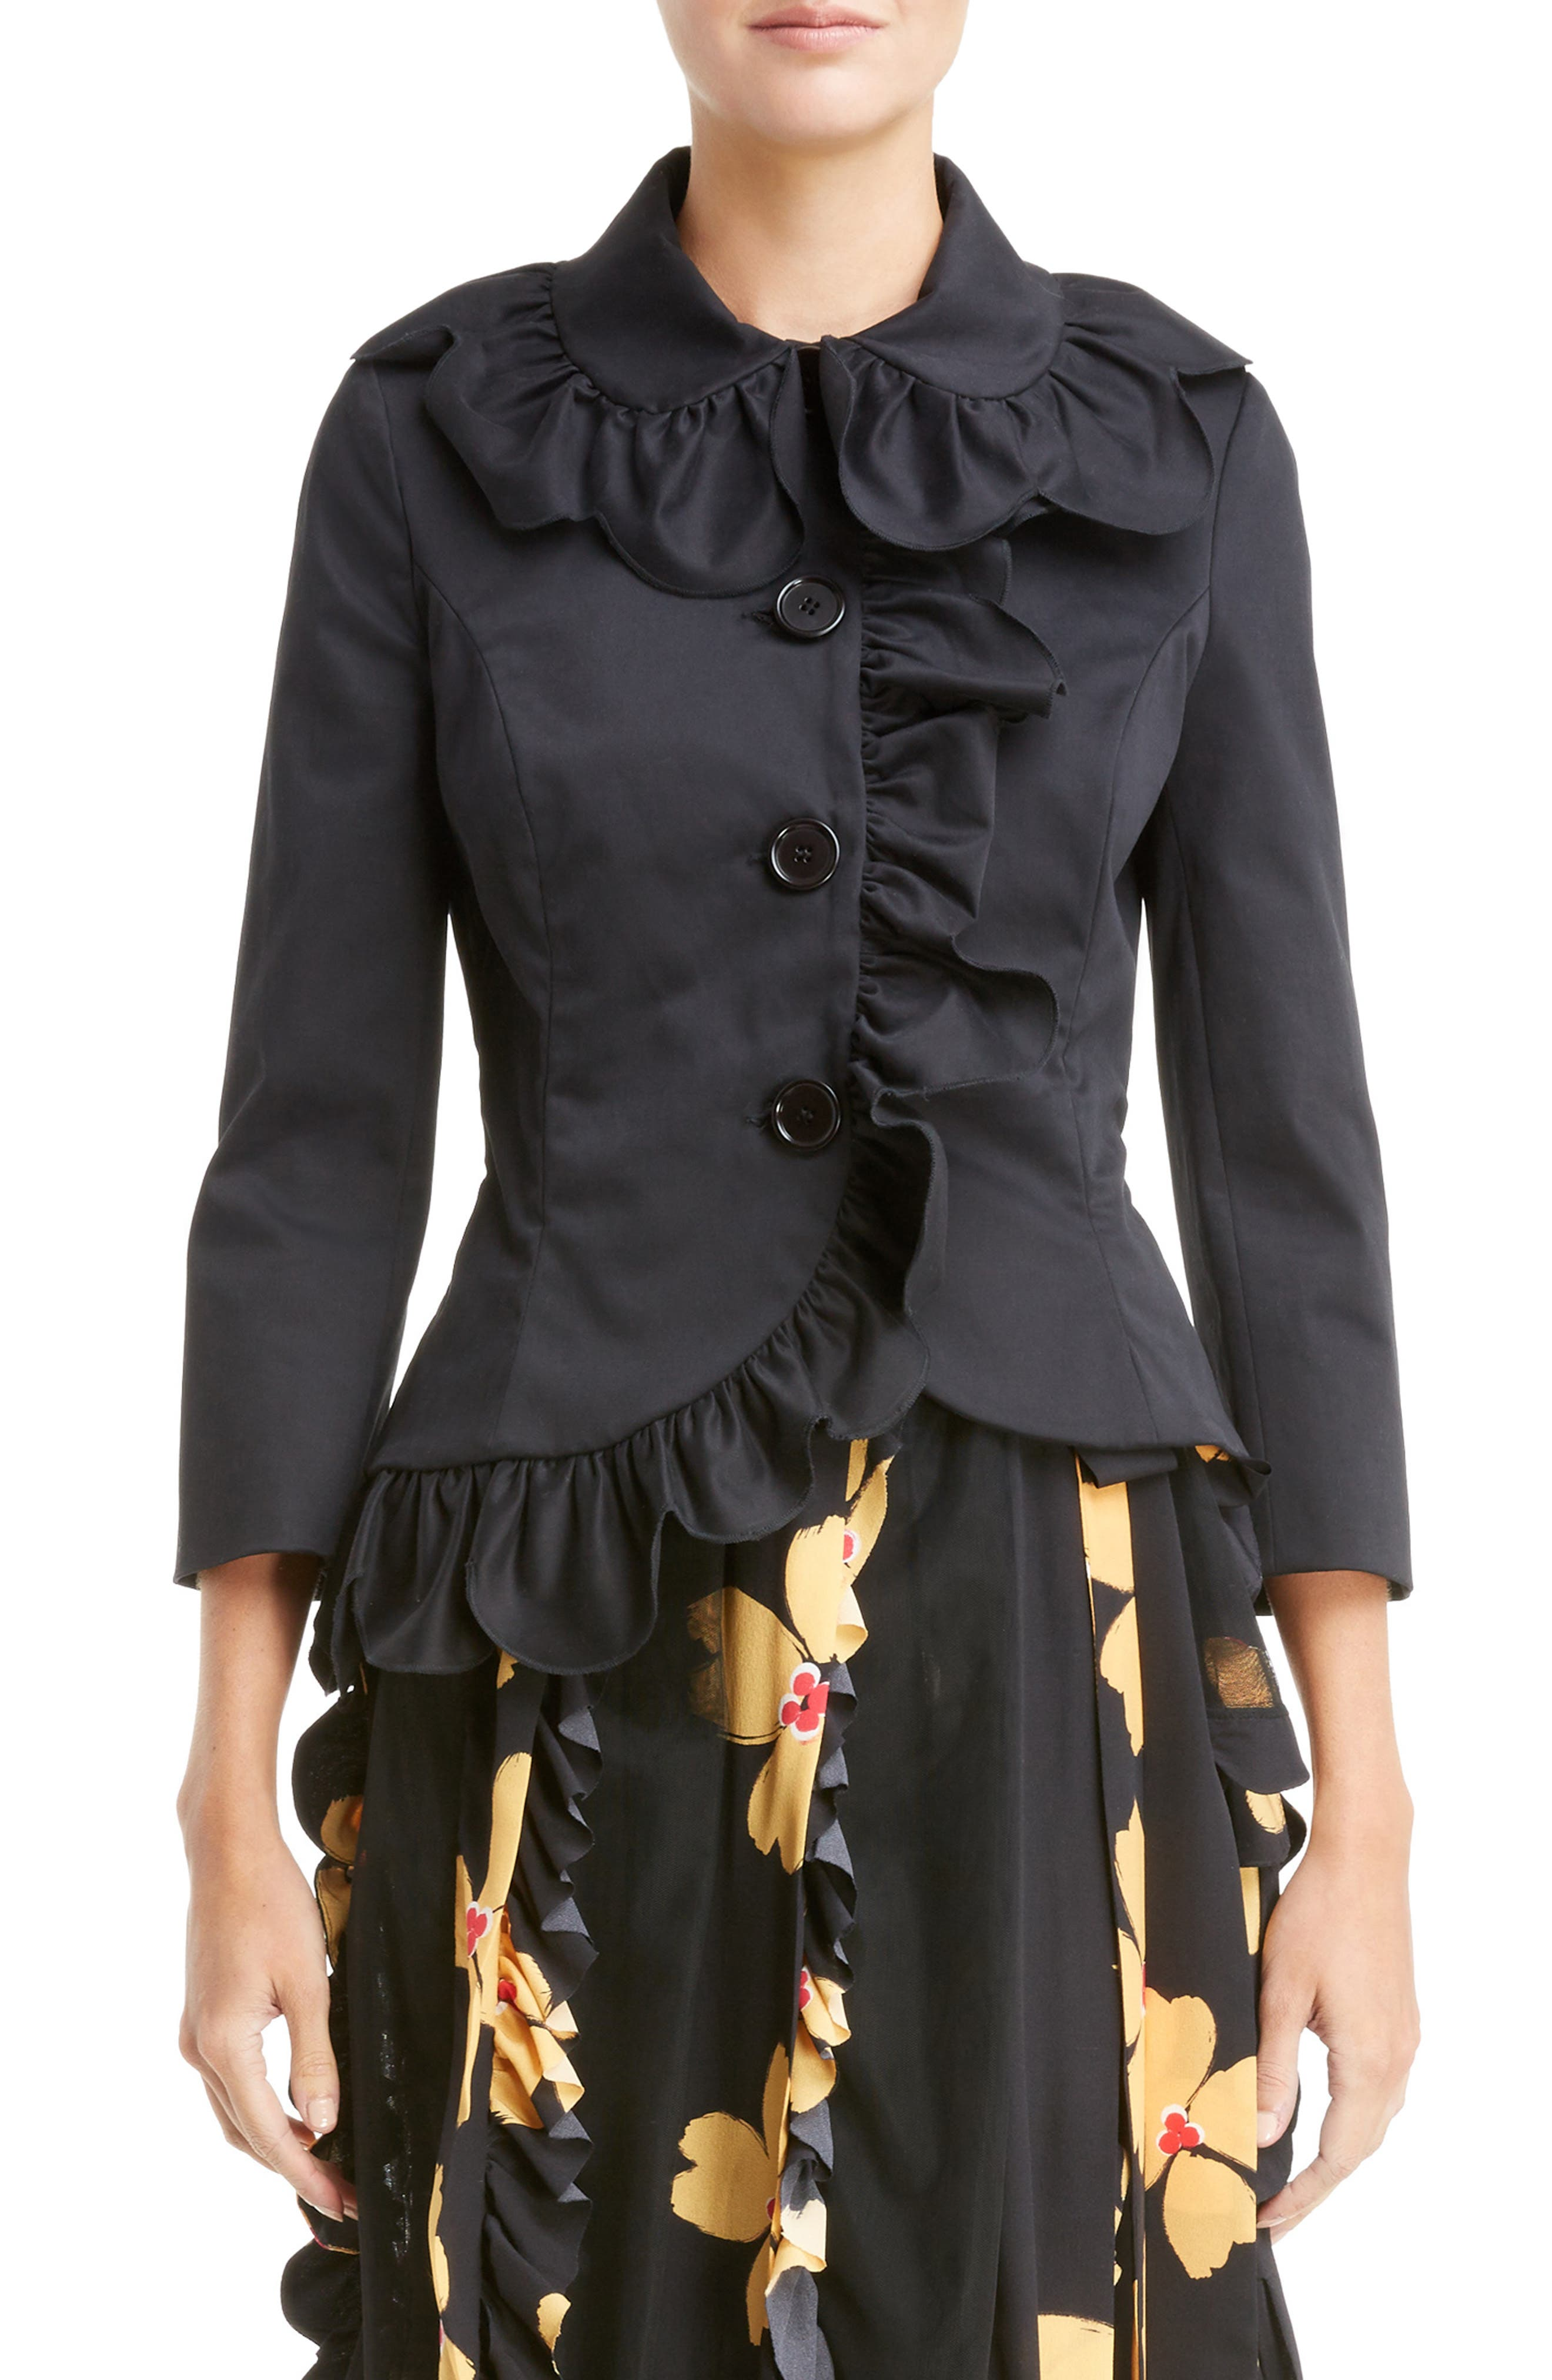 Scallop Frill Fitted Jacket,                         Main,                         color,